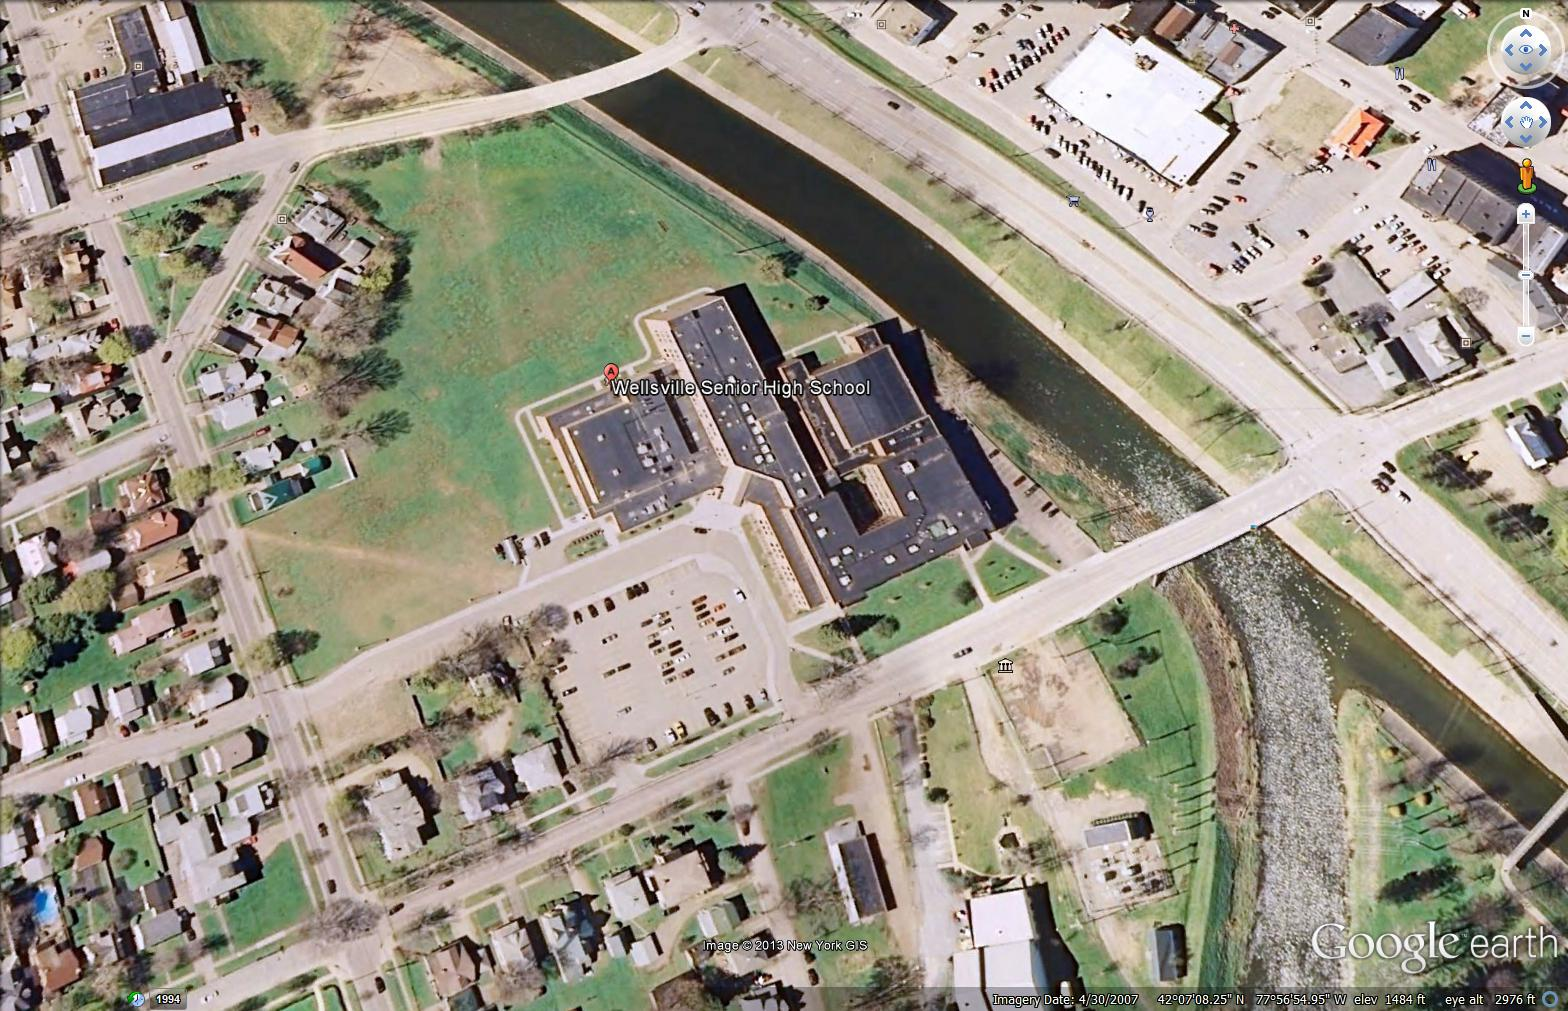 Wellsville senior high school top view